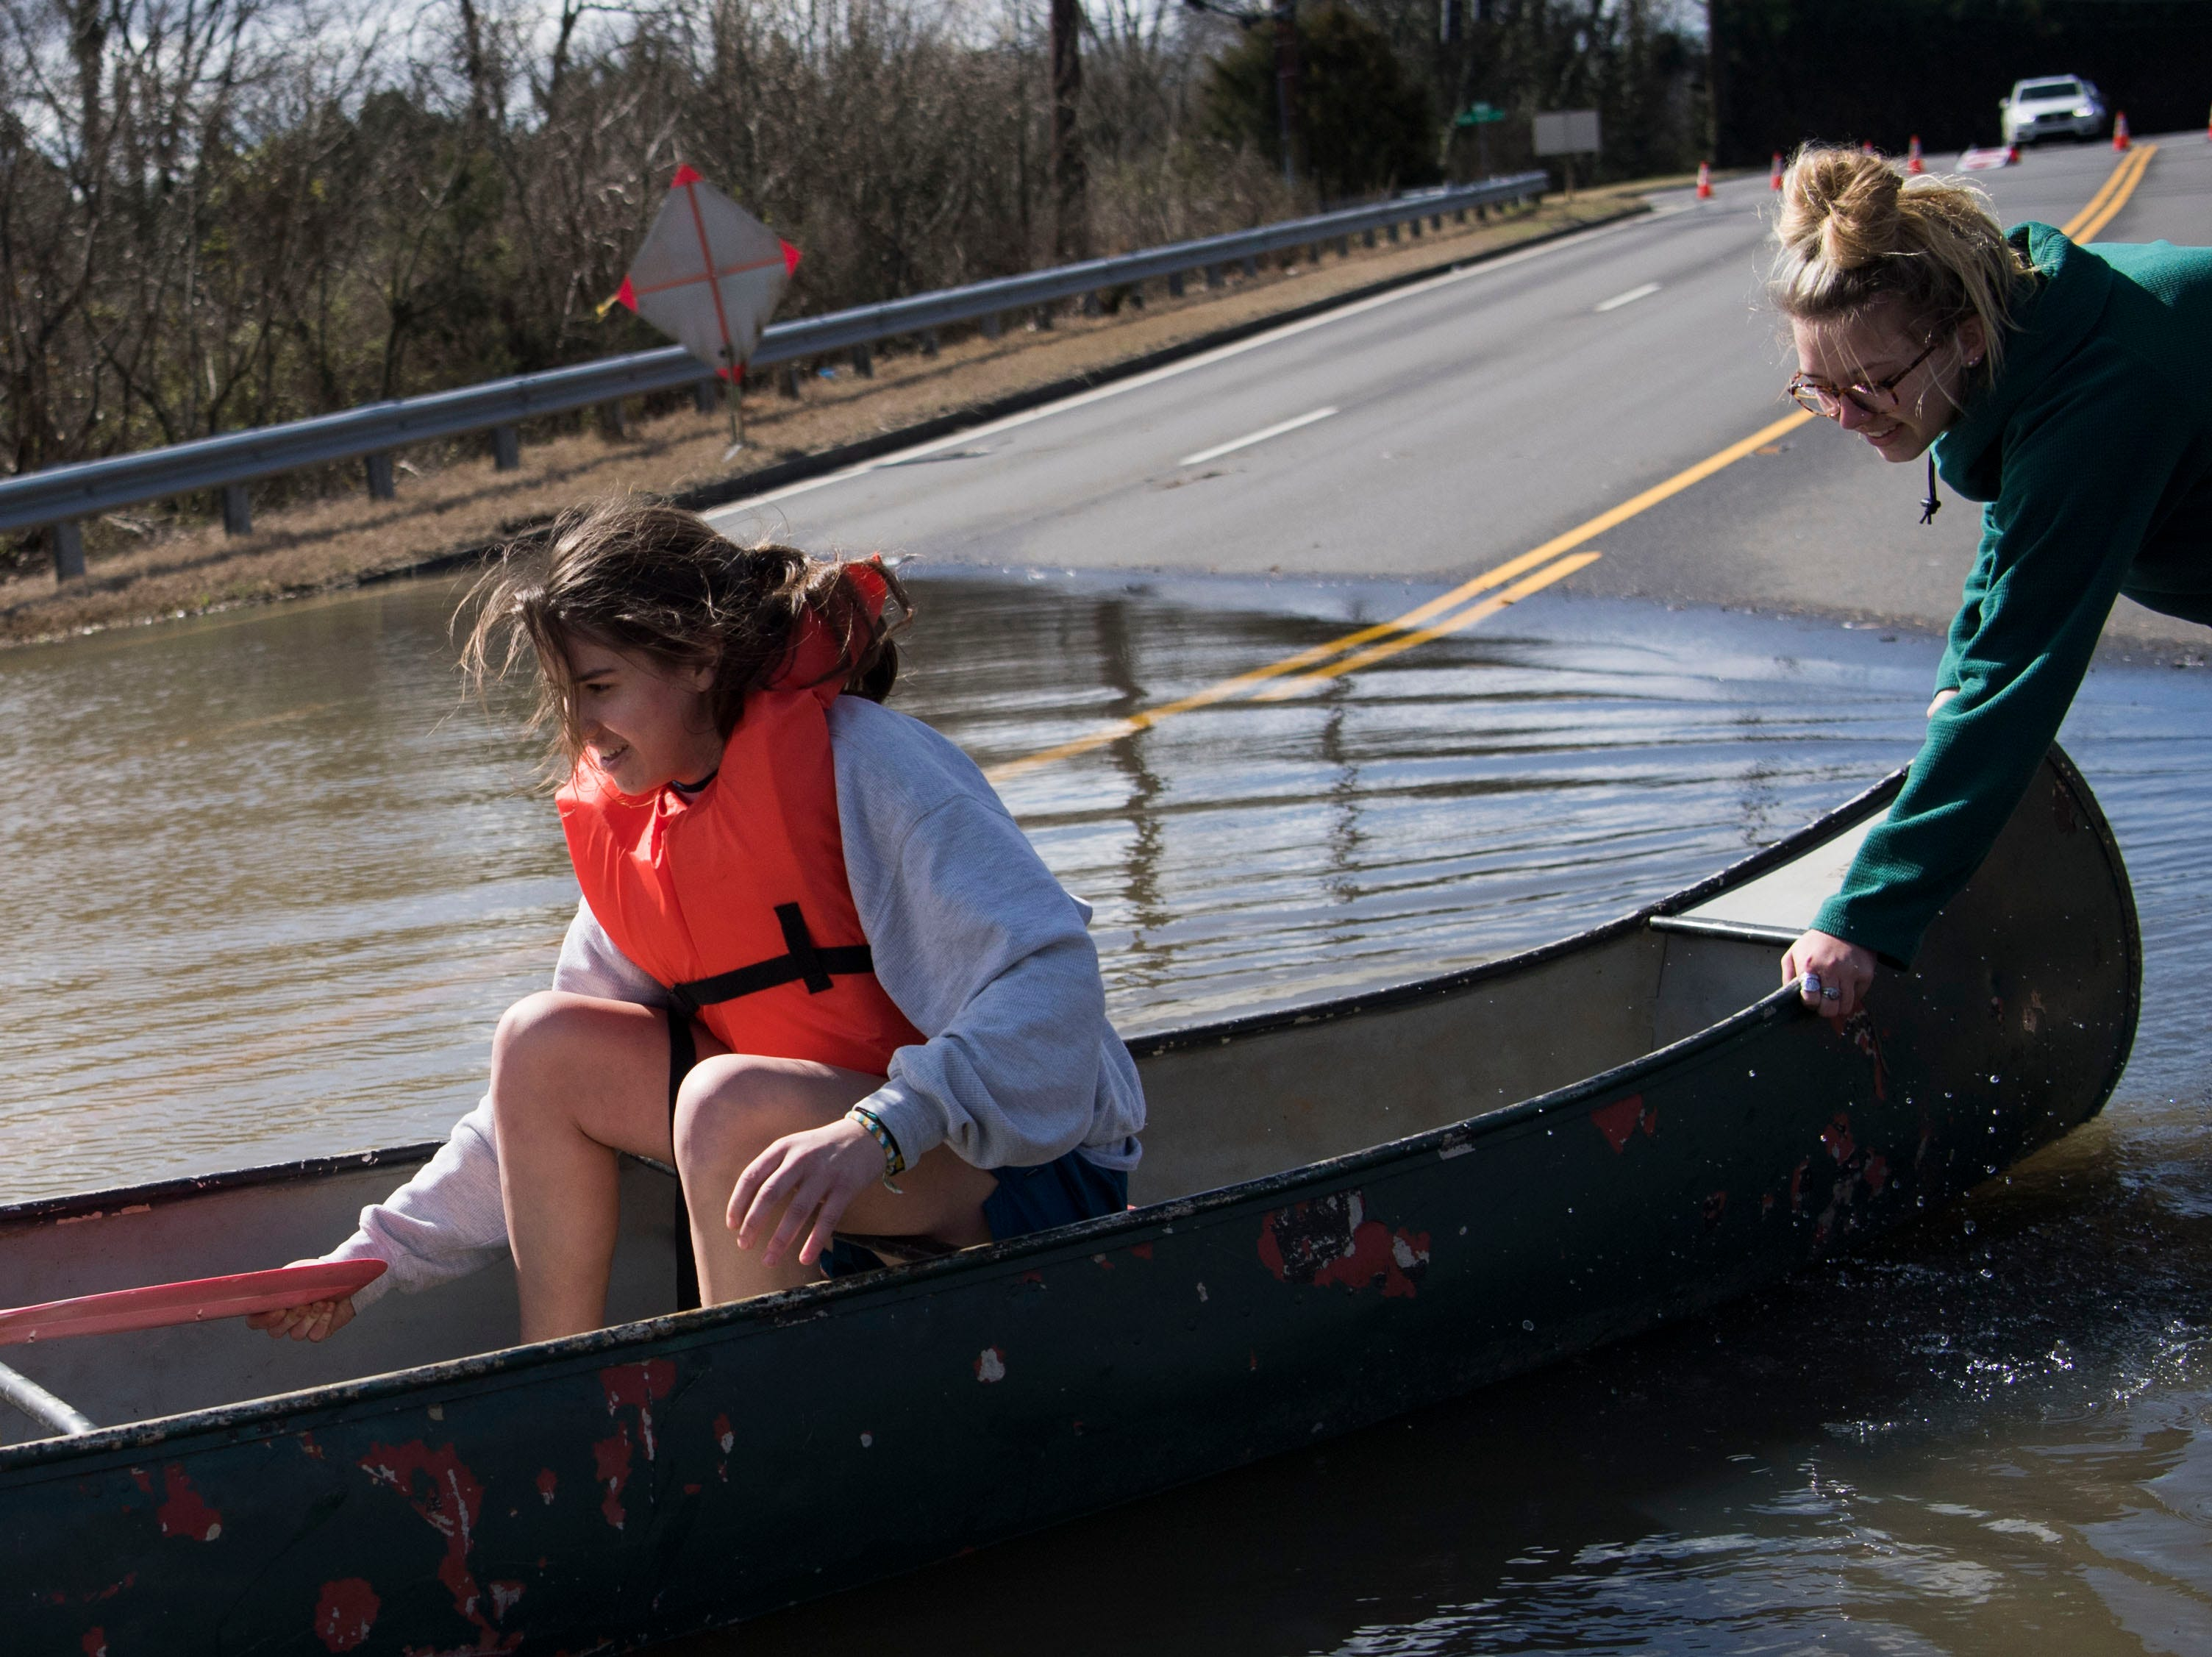 Ansley Pacetti, 18, pushes off her friend Julia Bryant, 18, into flood waters on South Northshore Drive in Southwest Knox County Sunday, Feb. 24, 2019.Bryant canoed to her home which was surrounded by flood waters off Lantair Farm Lane, approximately three-quarters of a mile away.